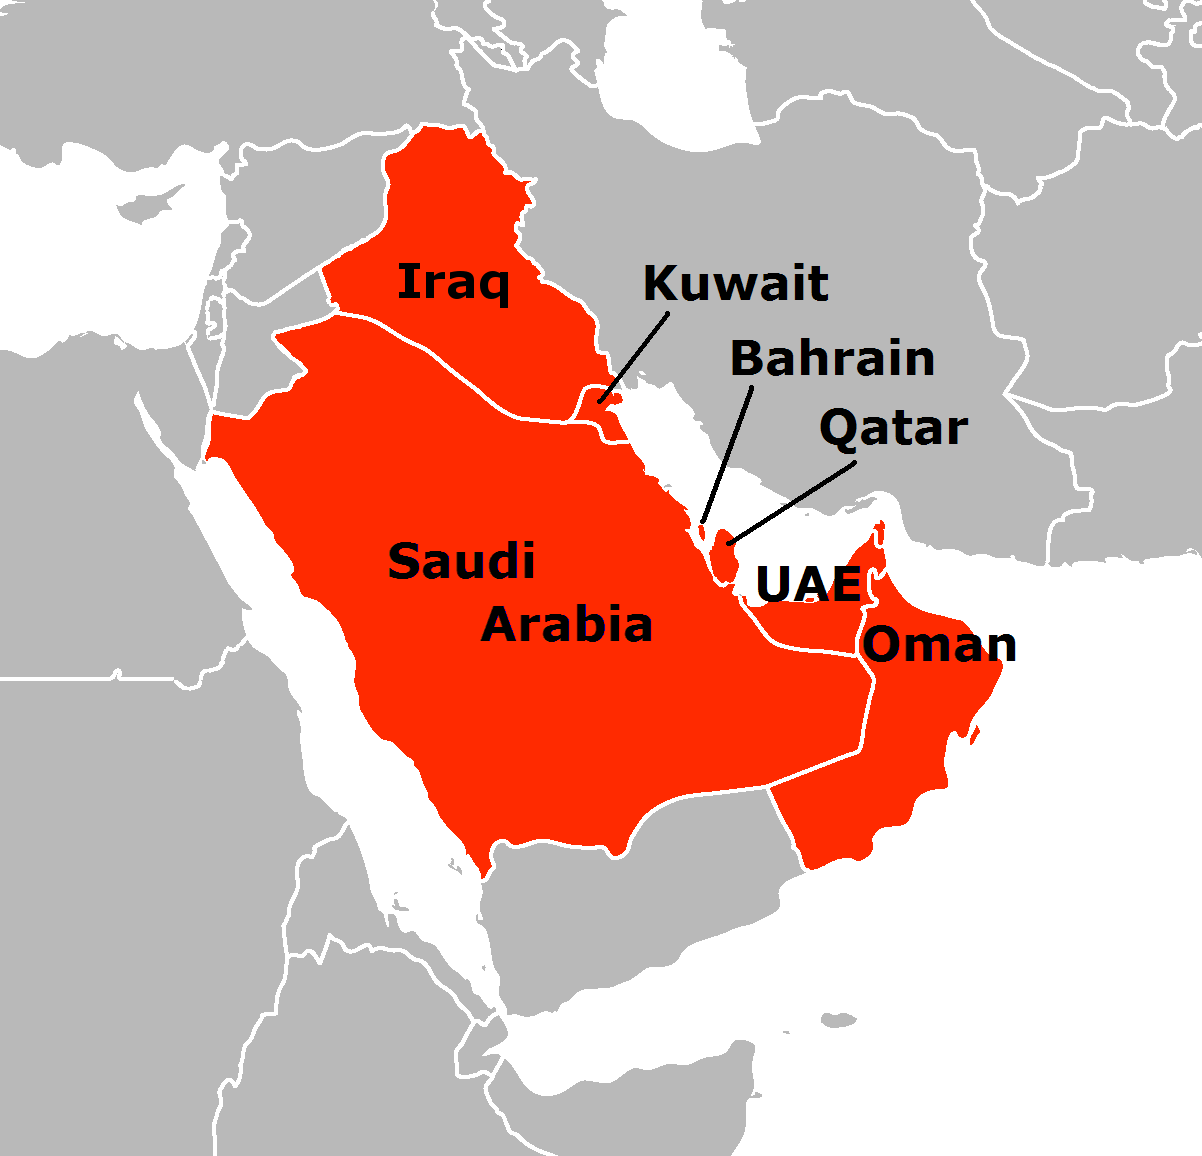 Arab states of the Persian Gulf - Wikipedia